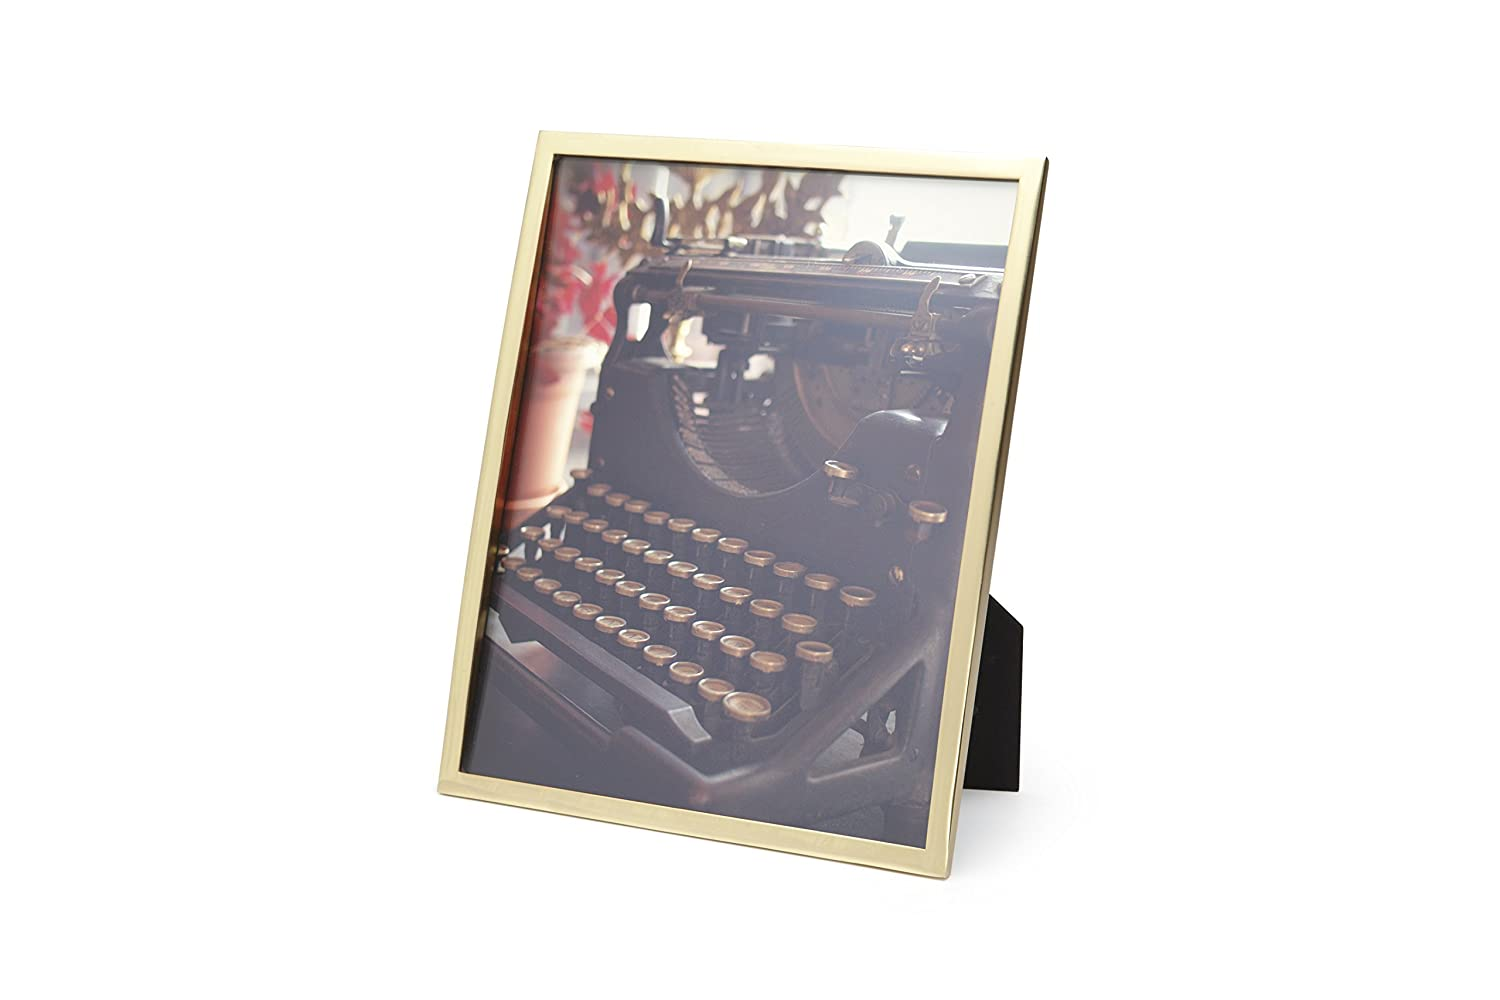 Copper 306788-880 8 by 10-Inch Umbra Senza Metal Picture Frame